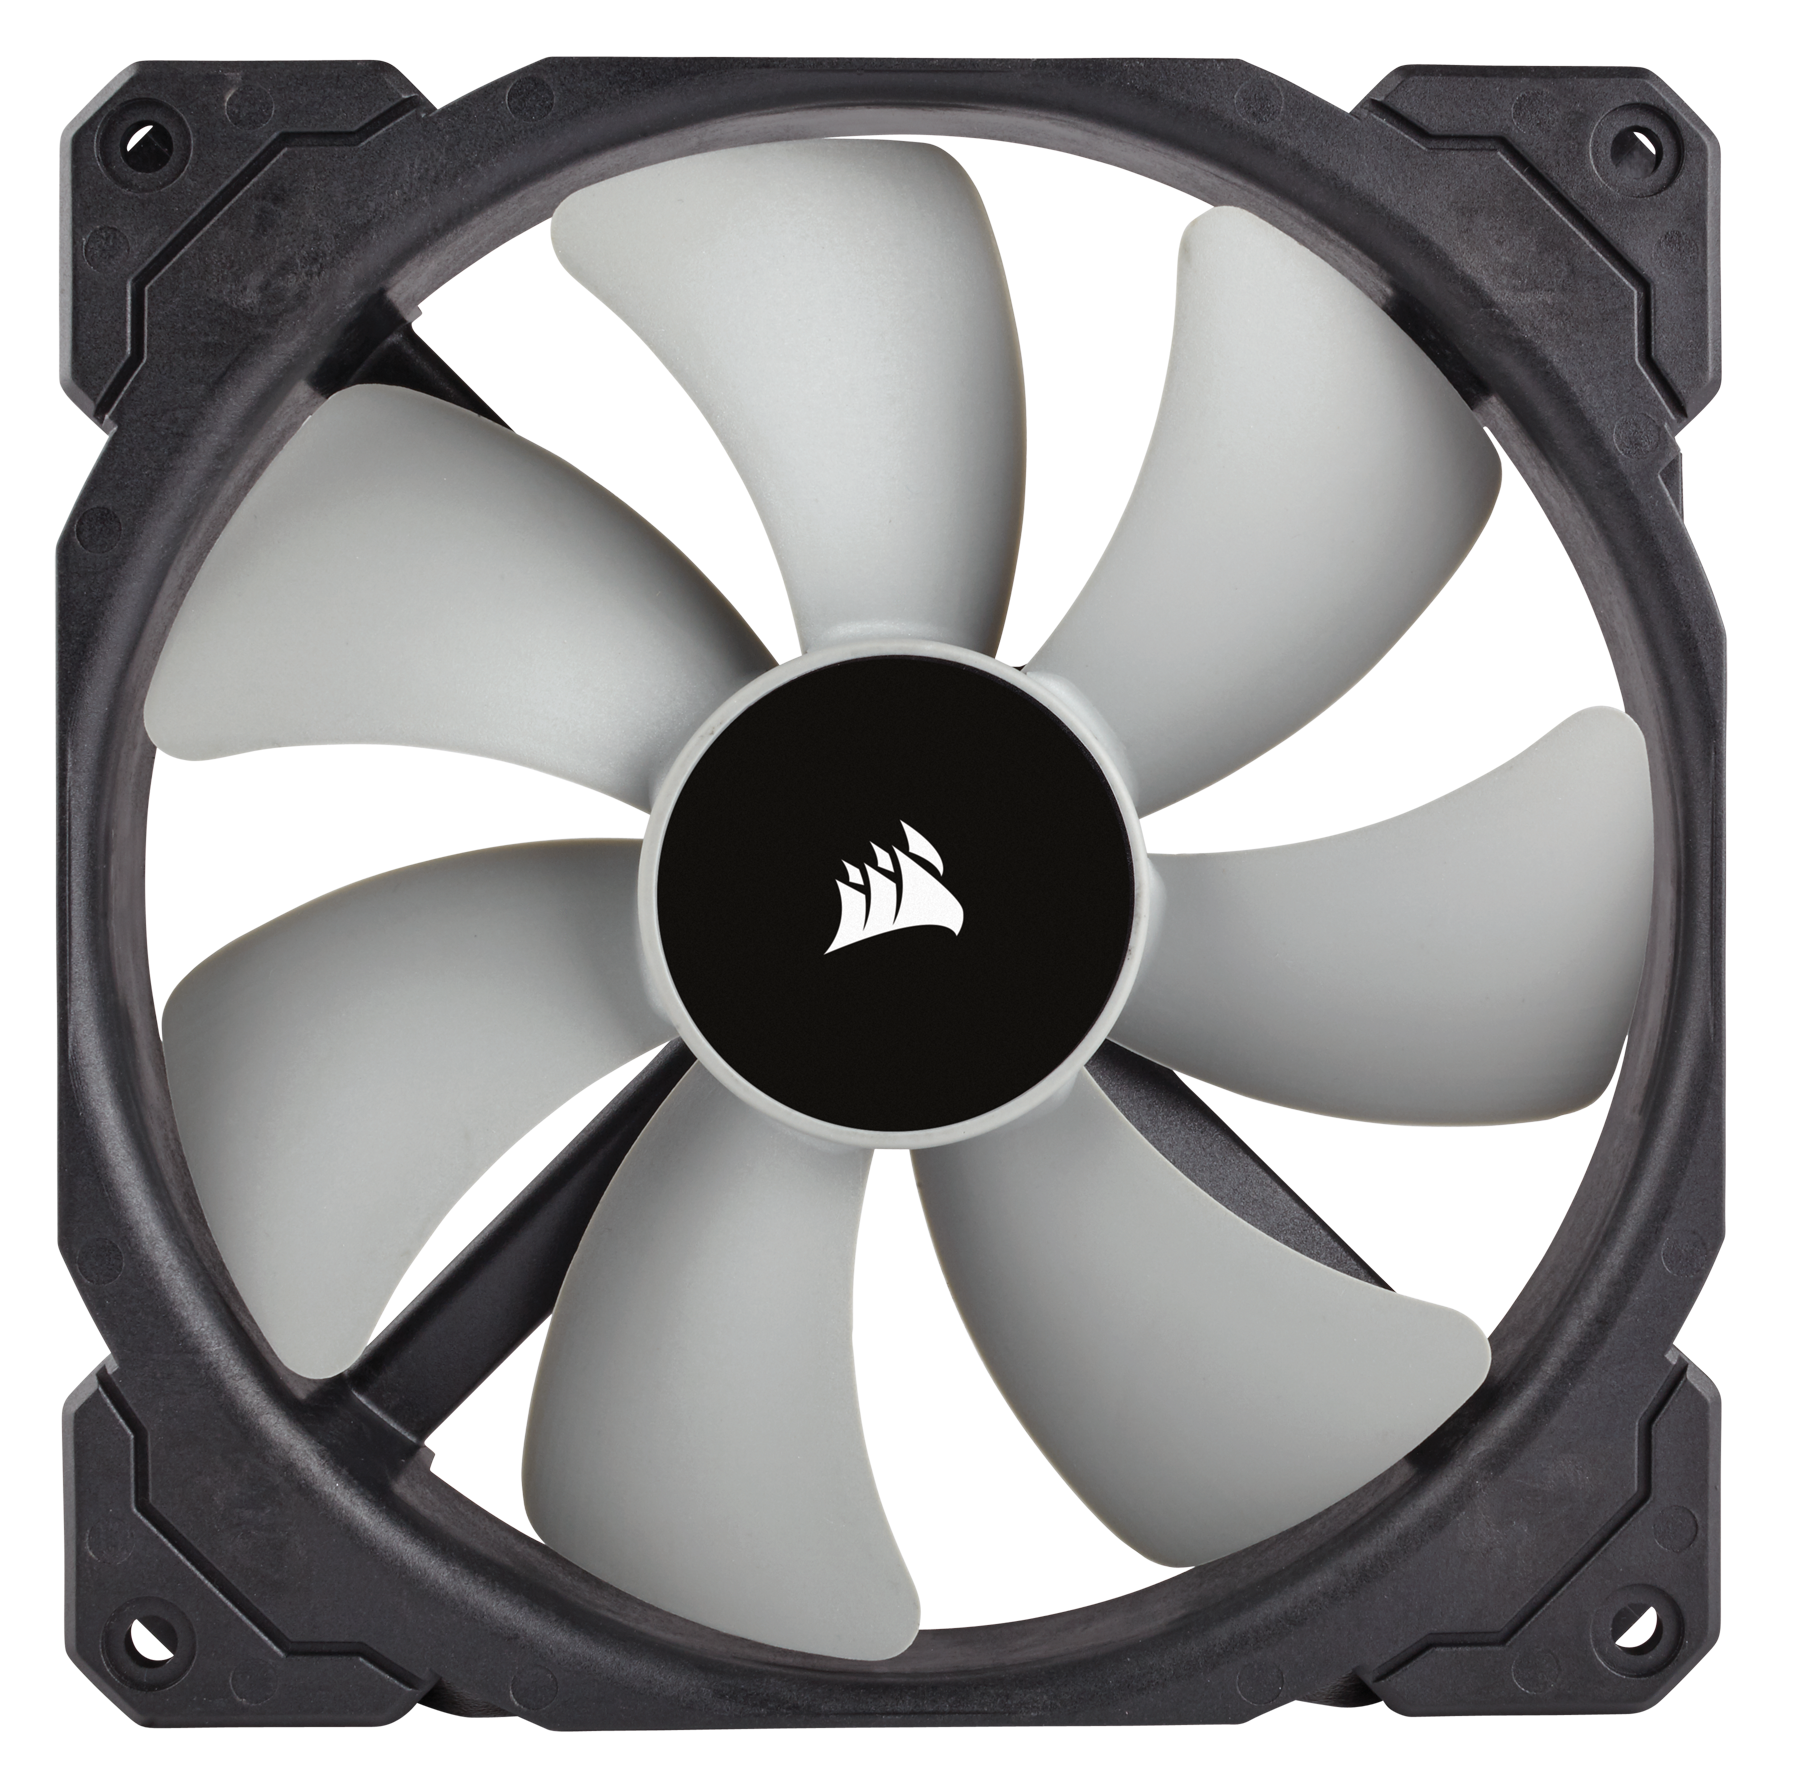 slide 3 of 3,show larger image, if nasa designed a computer case fan – this would be it